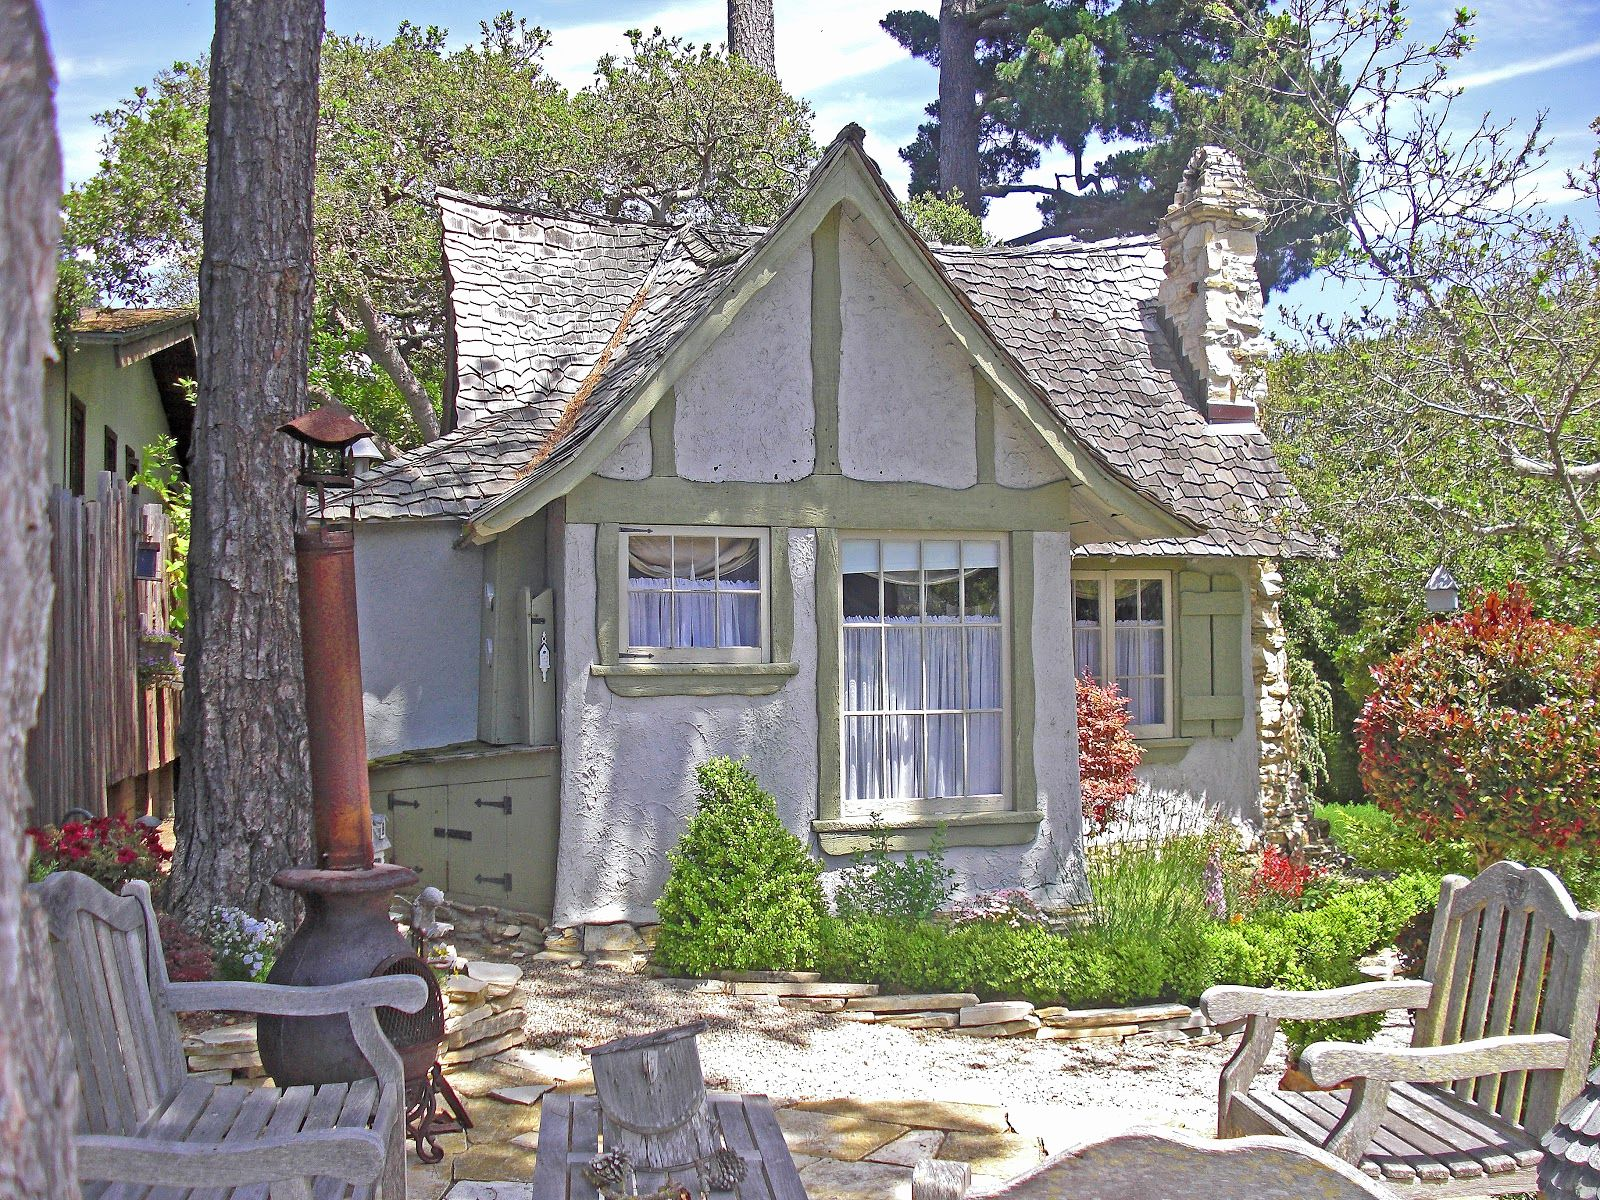 Fairytale Cottage Home Plans Awesome Fairytale Cottage House Plans     Fairytale Cottage Home Plans Awesome Fairytale Cottage House Plans the Rose  Designed by Storybook Homes